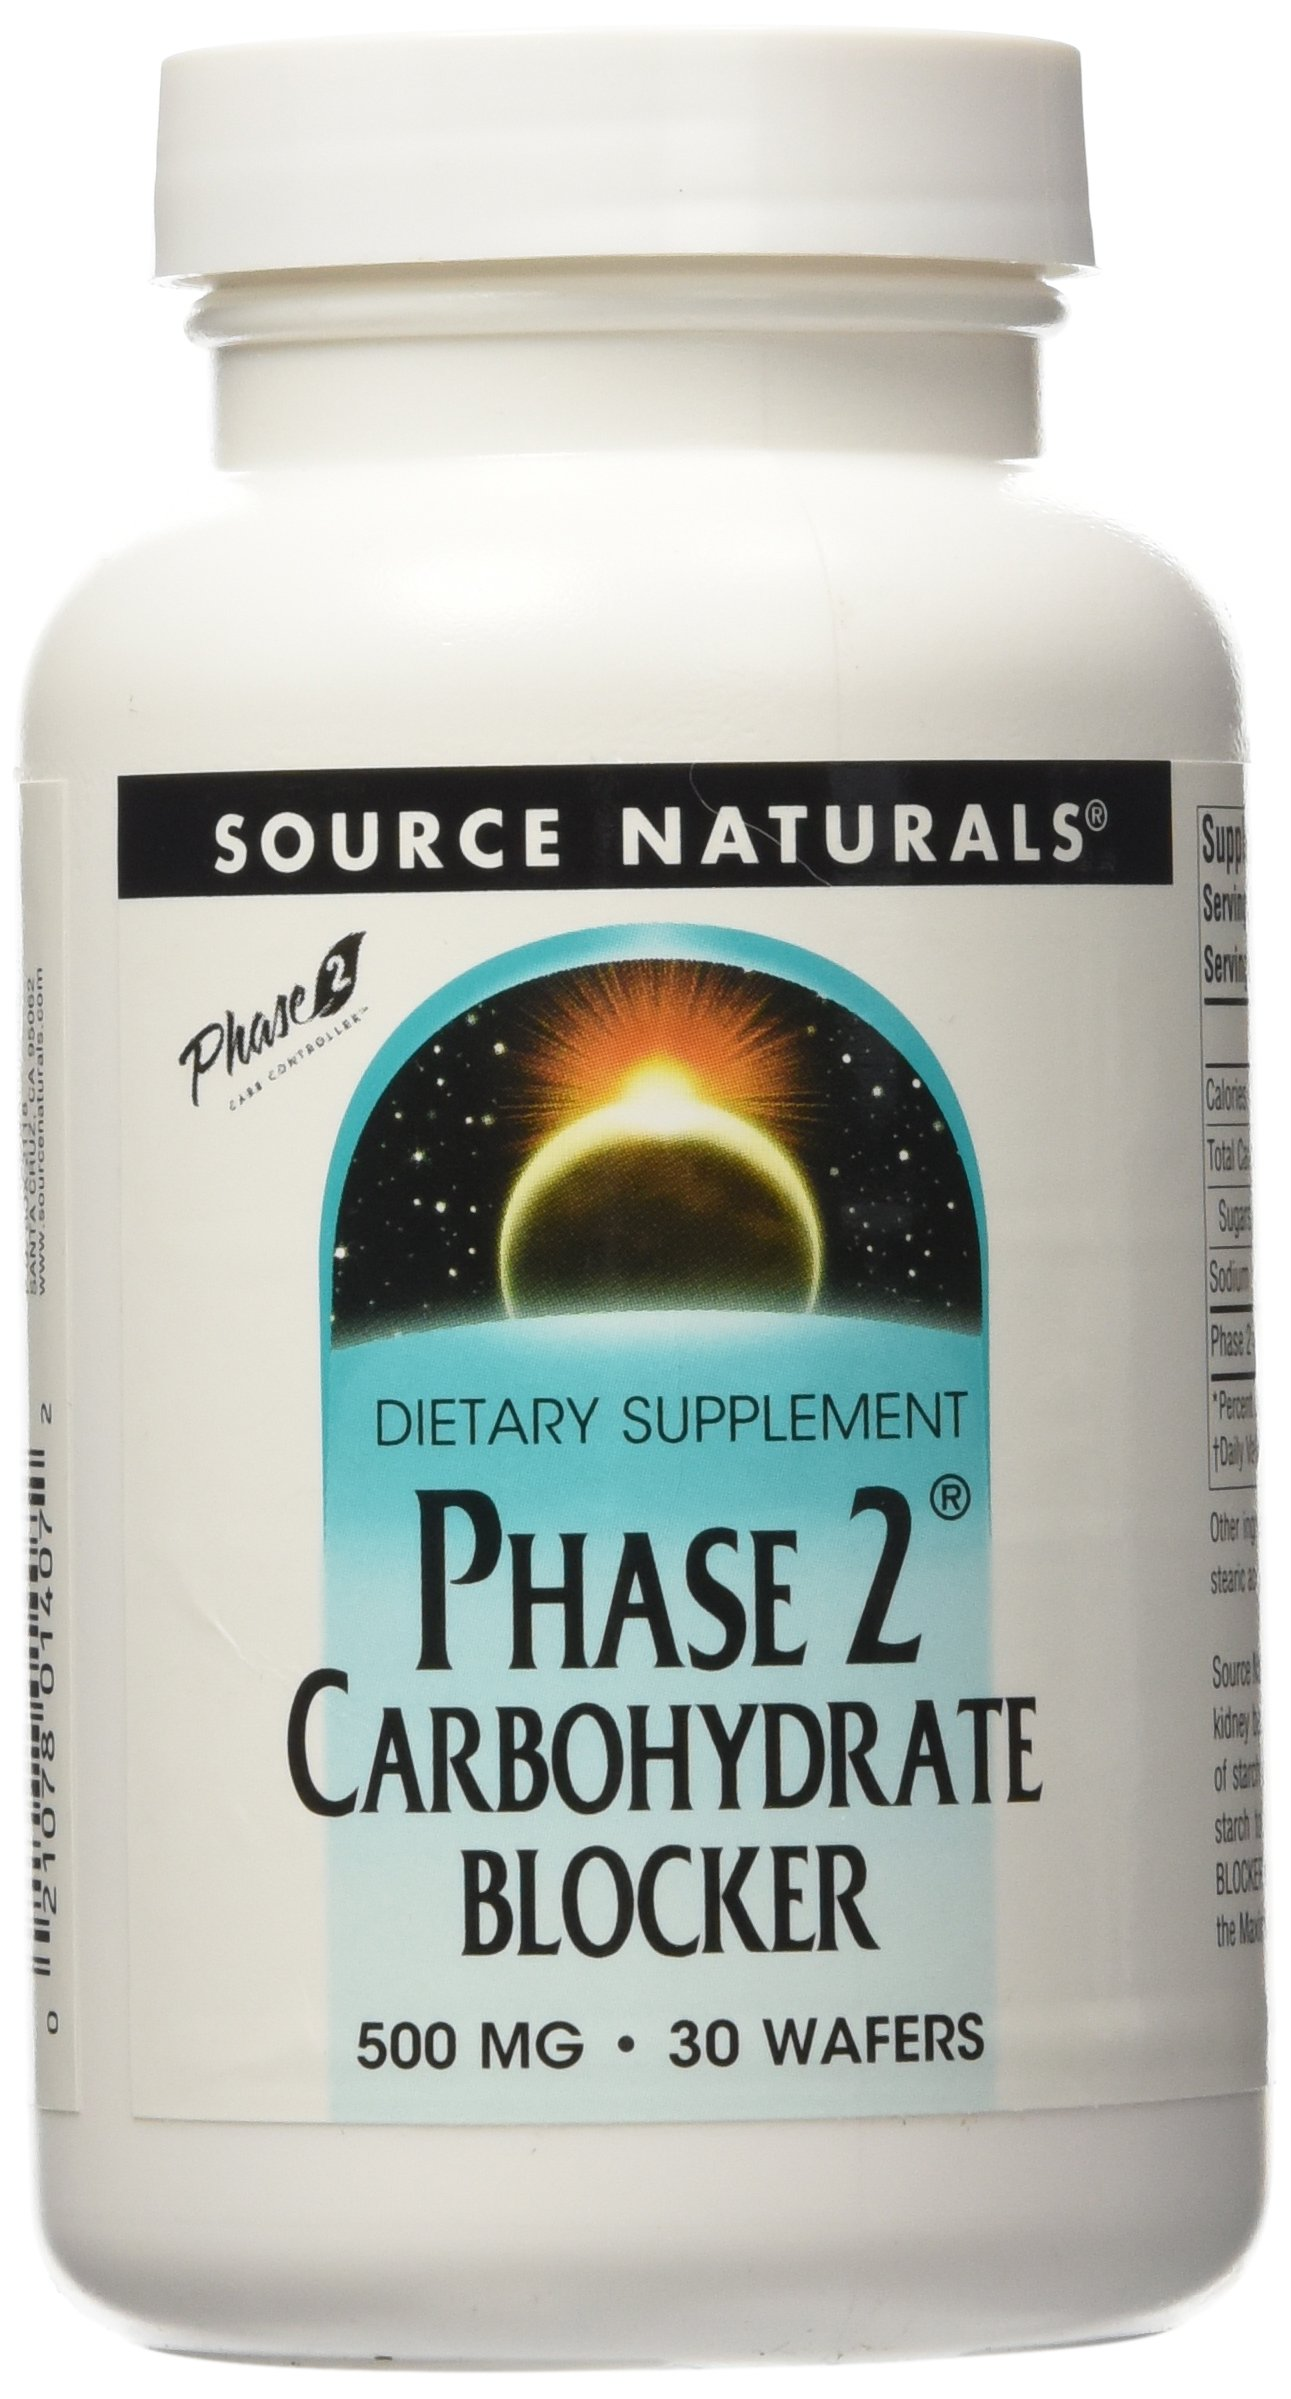 SOURCE NATURALS Phase 2 Carbohydrate Blocker 500 Mg Wafer, 30 Count